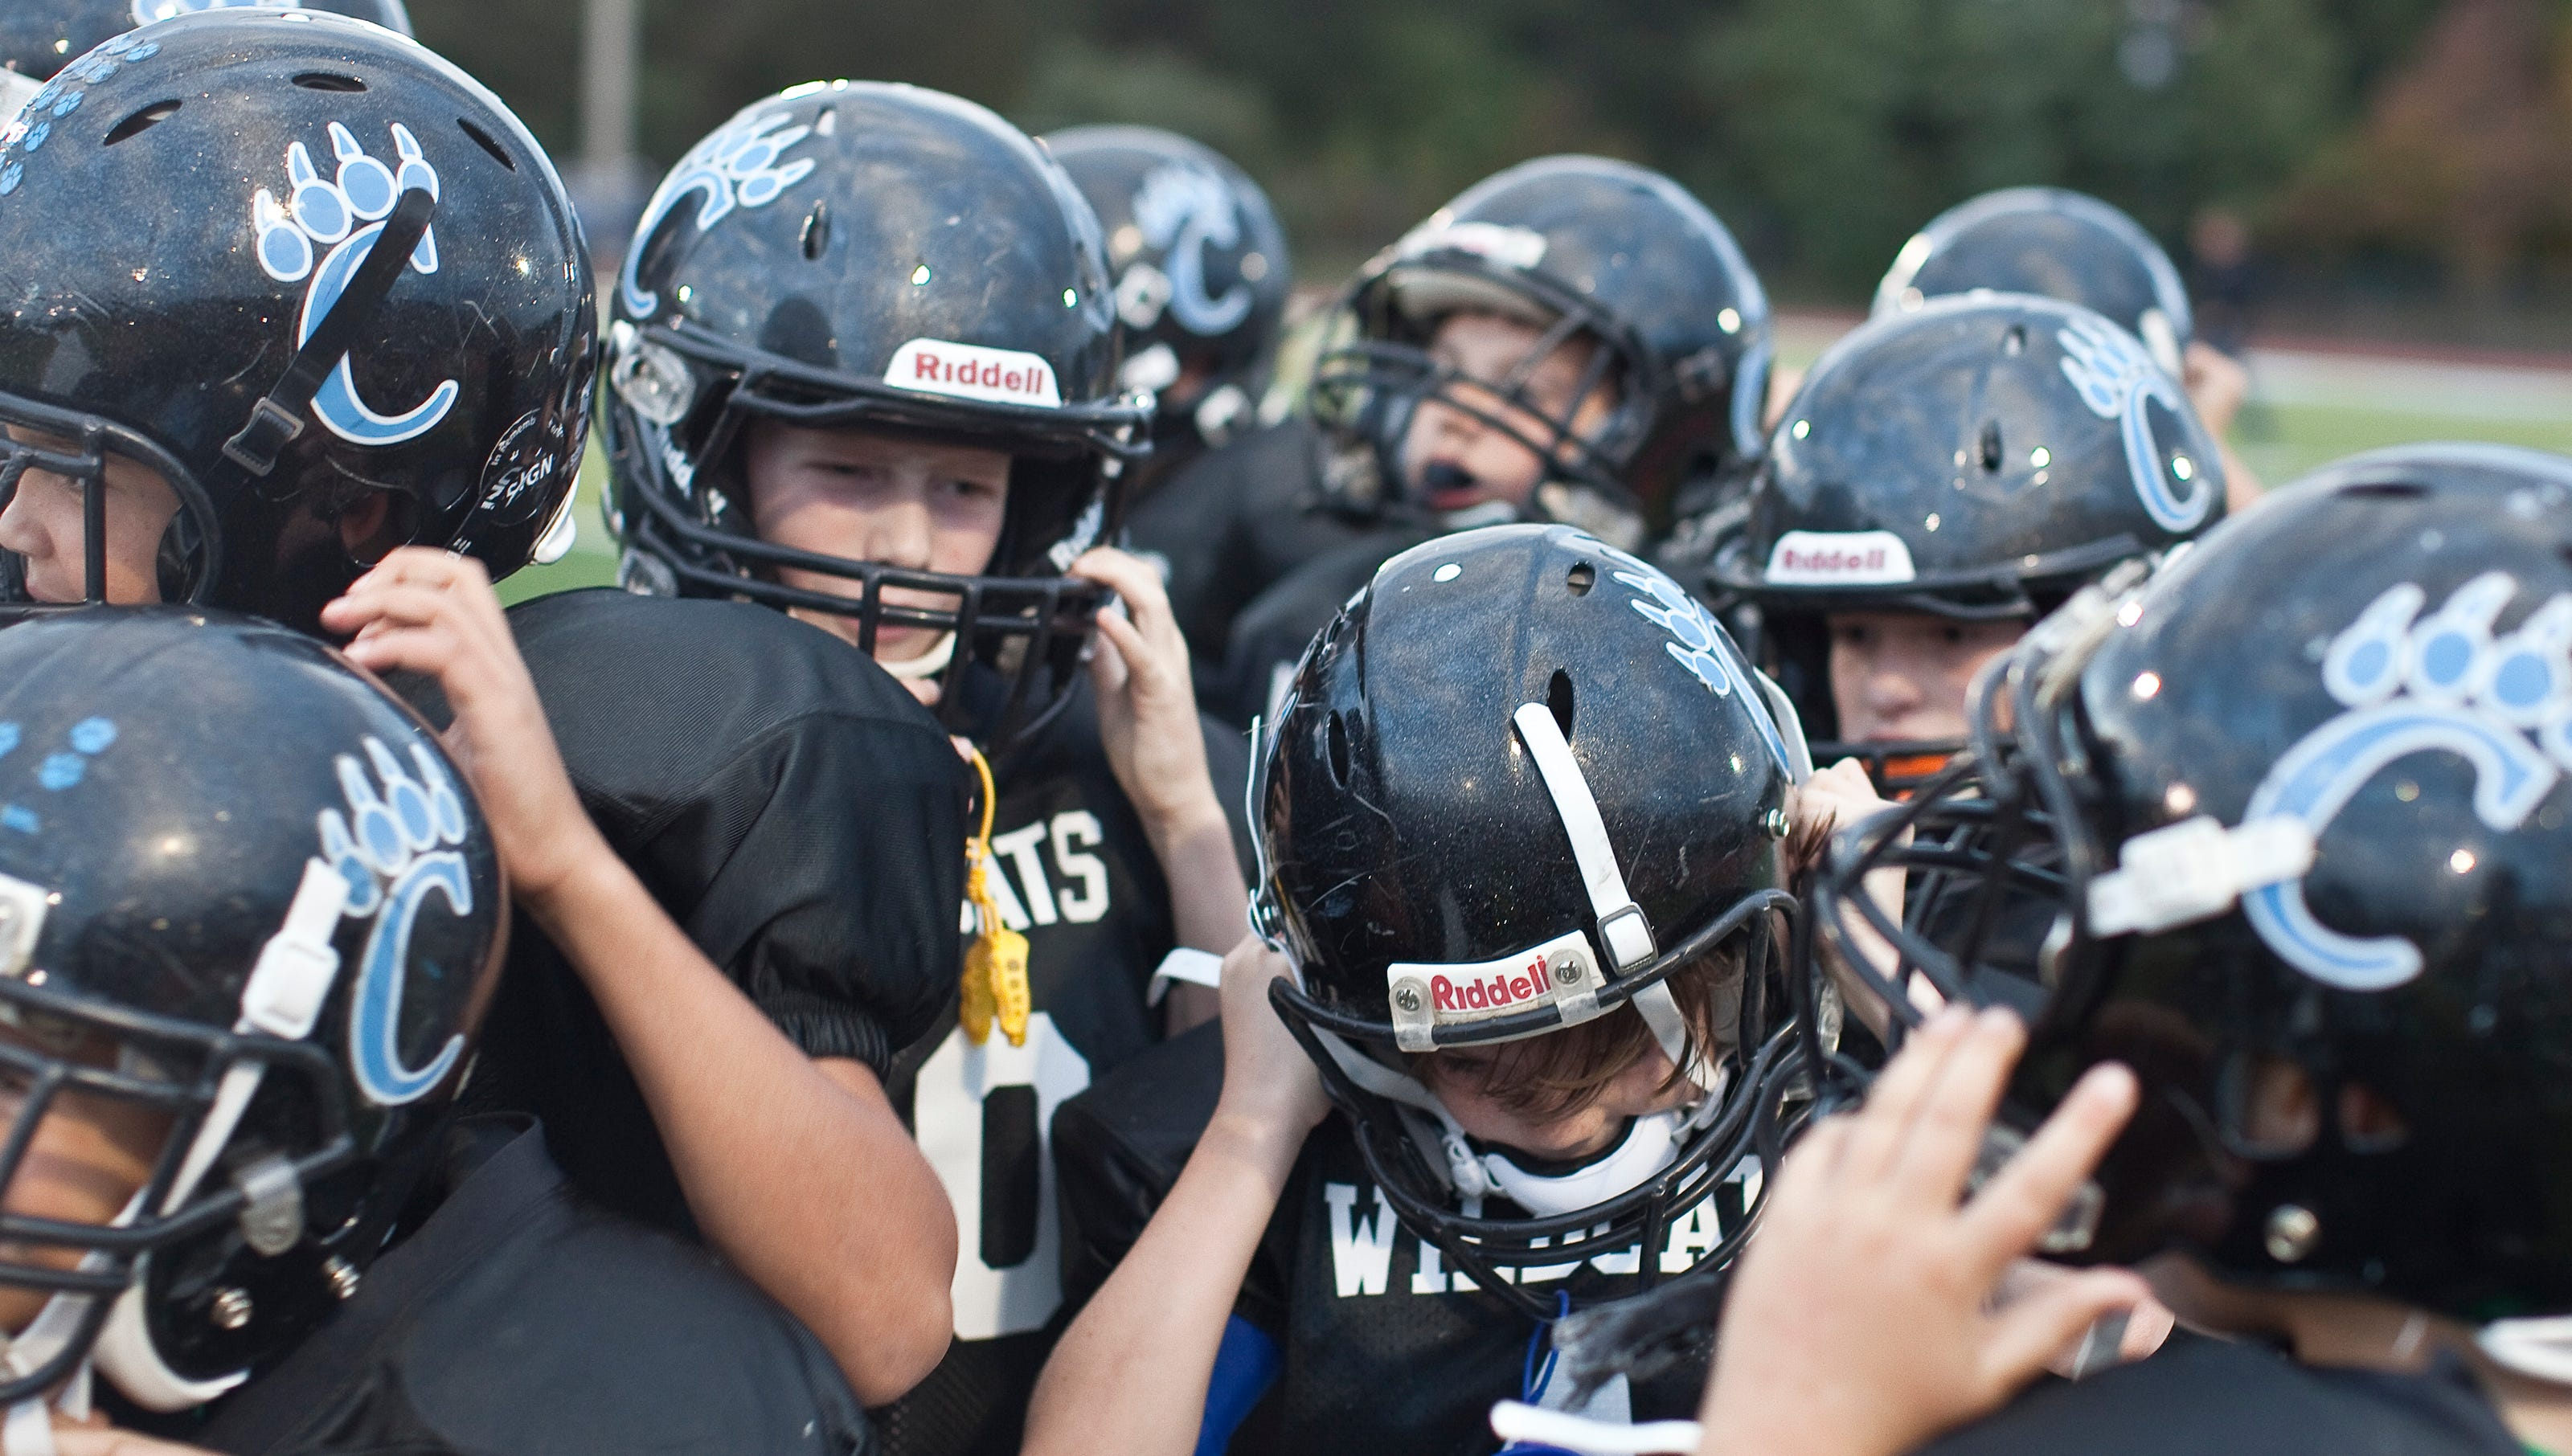 Evidence shows cognitive rest aids concussion recovery